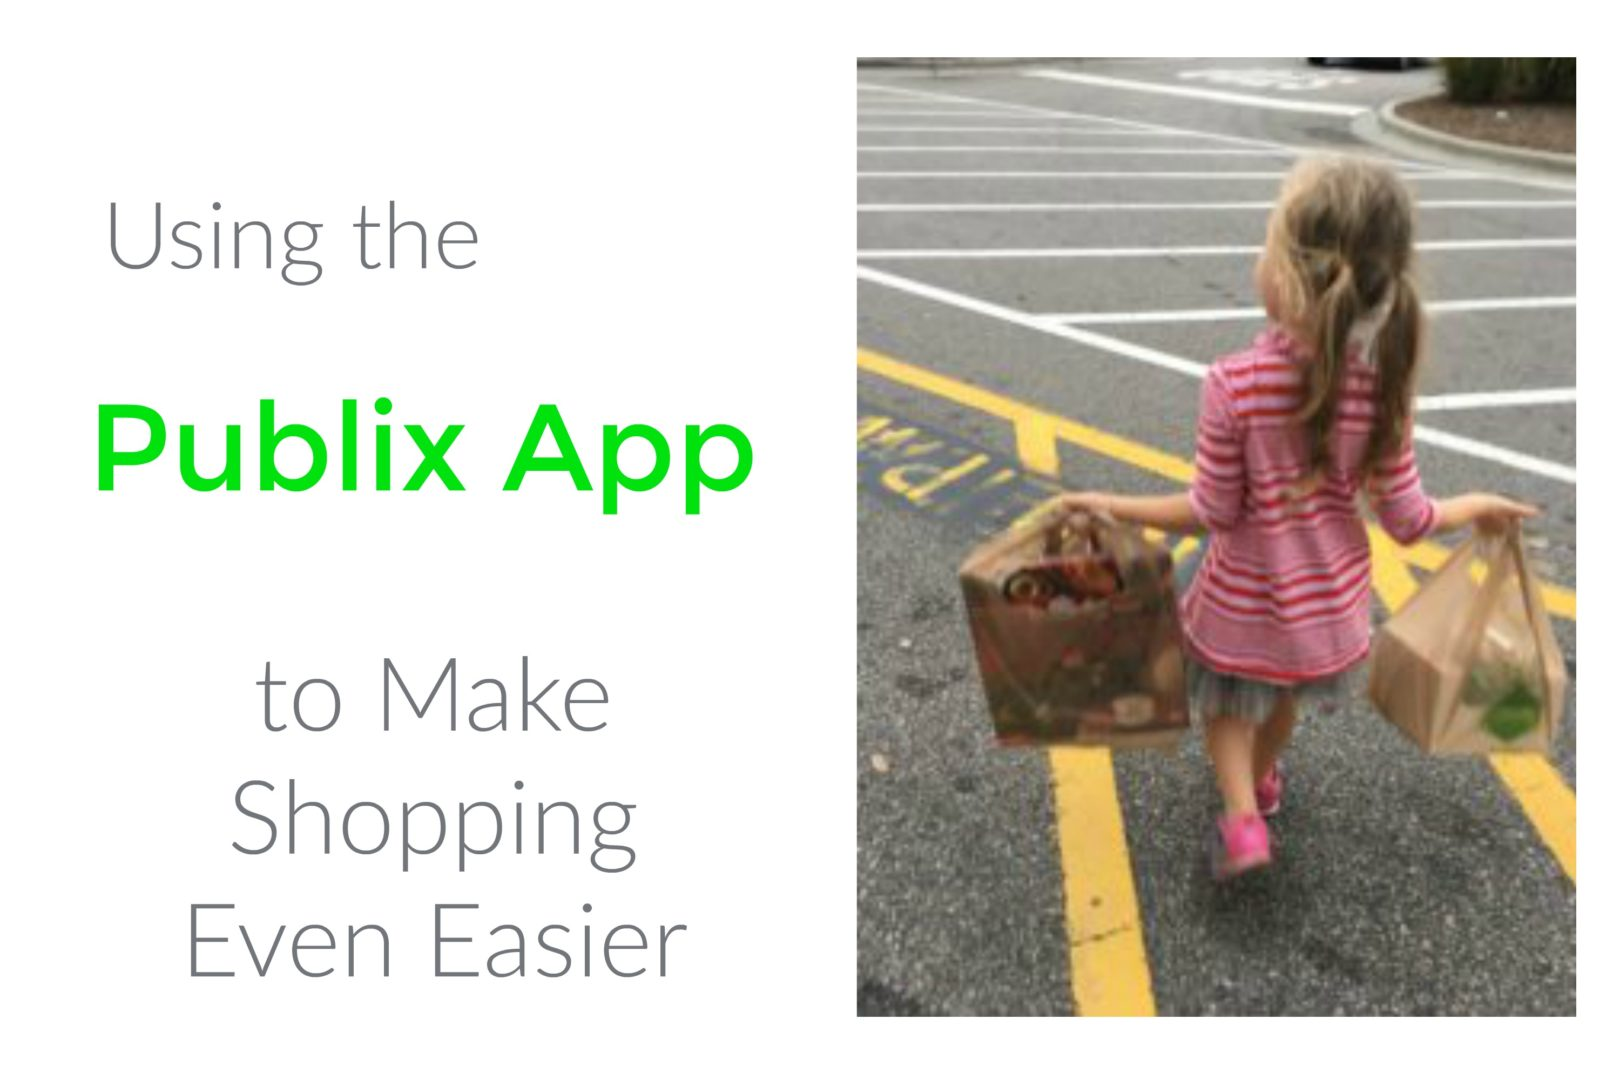 Using the Publix App to Make Shopping Even Easier   Always Moving Mommy   Shopping with kids can be challenging. With this app, you'll save time and money